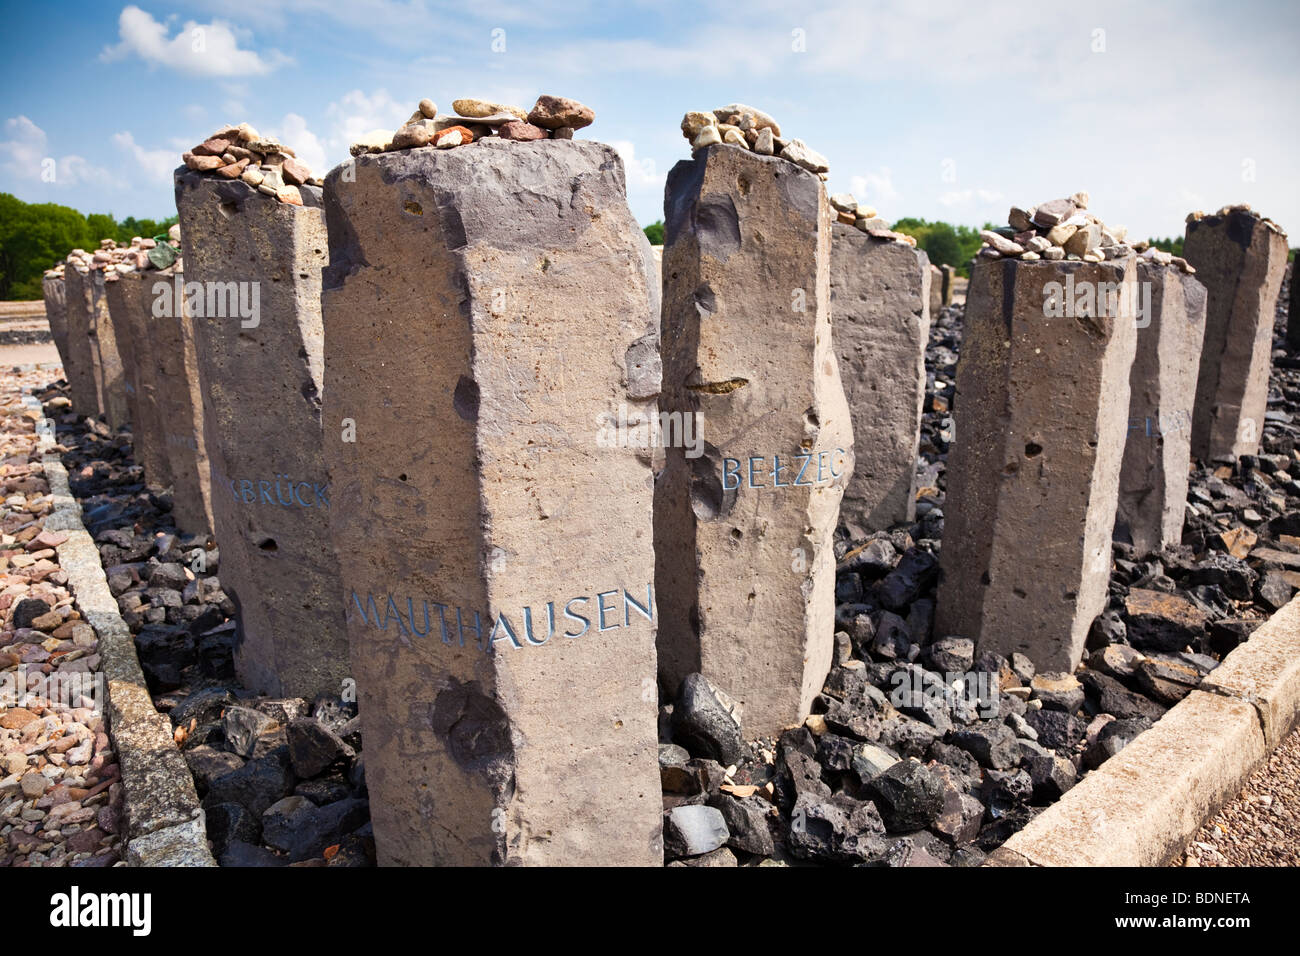 Memorial to the Roma and Sinti people murdered at Buchenwald Nazi Concentration Camp, Ettersberg, Germany, Europe Stock Photo